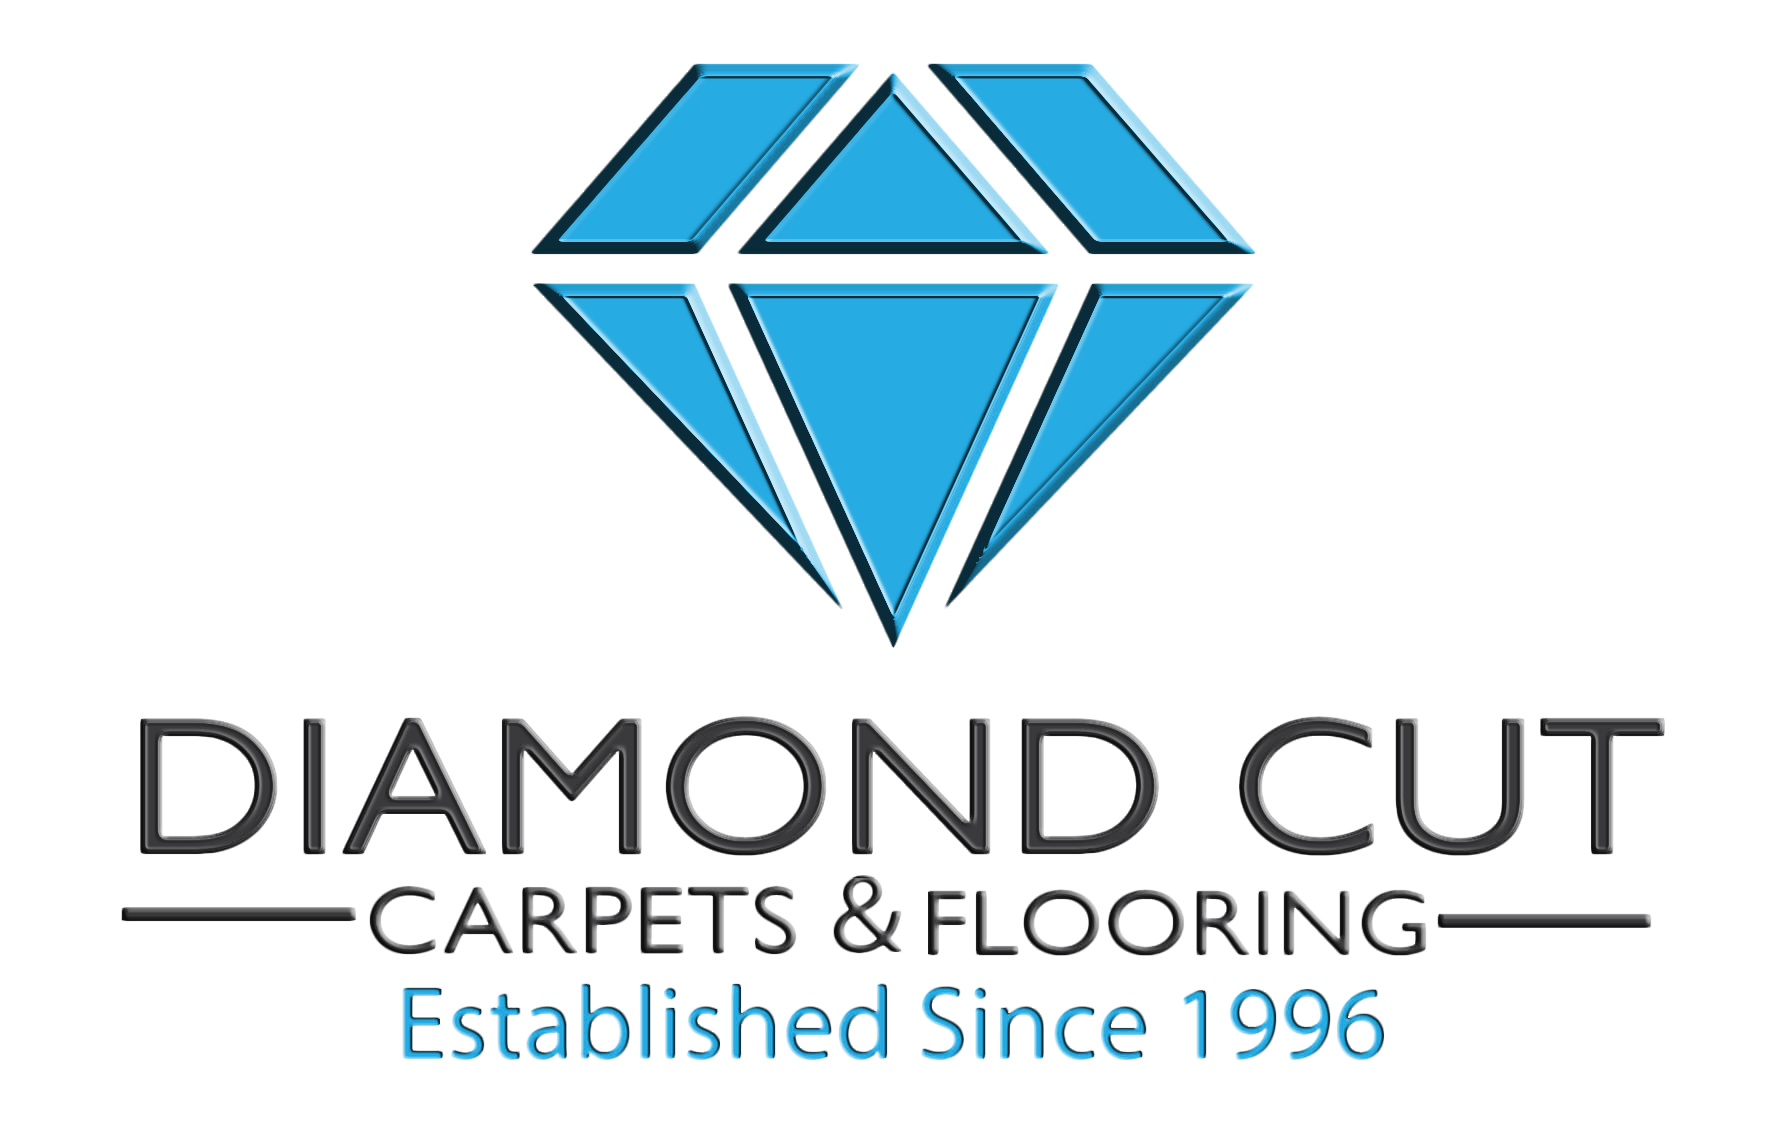 diamond cut carpets - flooring specialsts since 1996